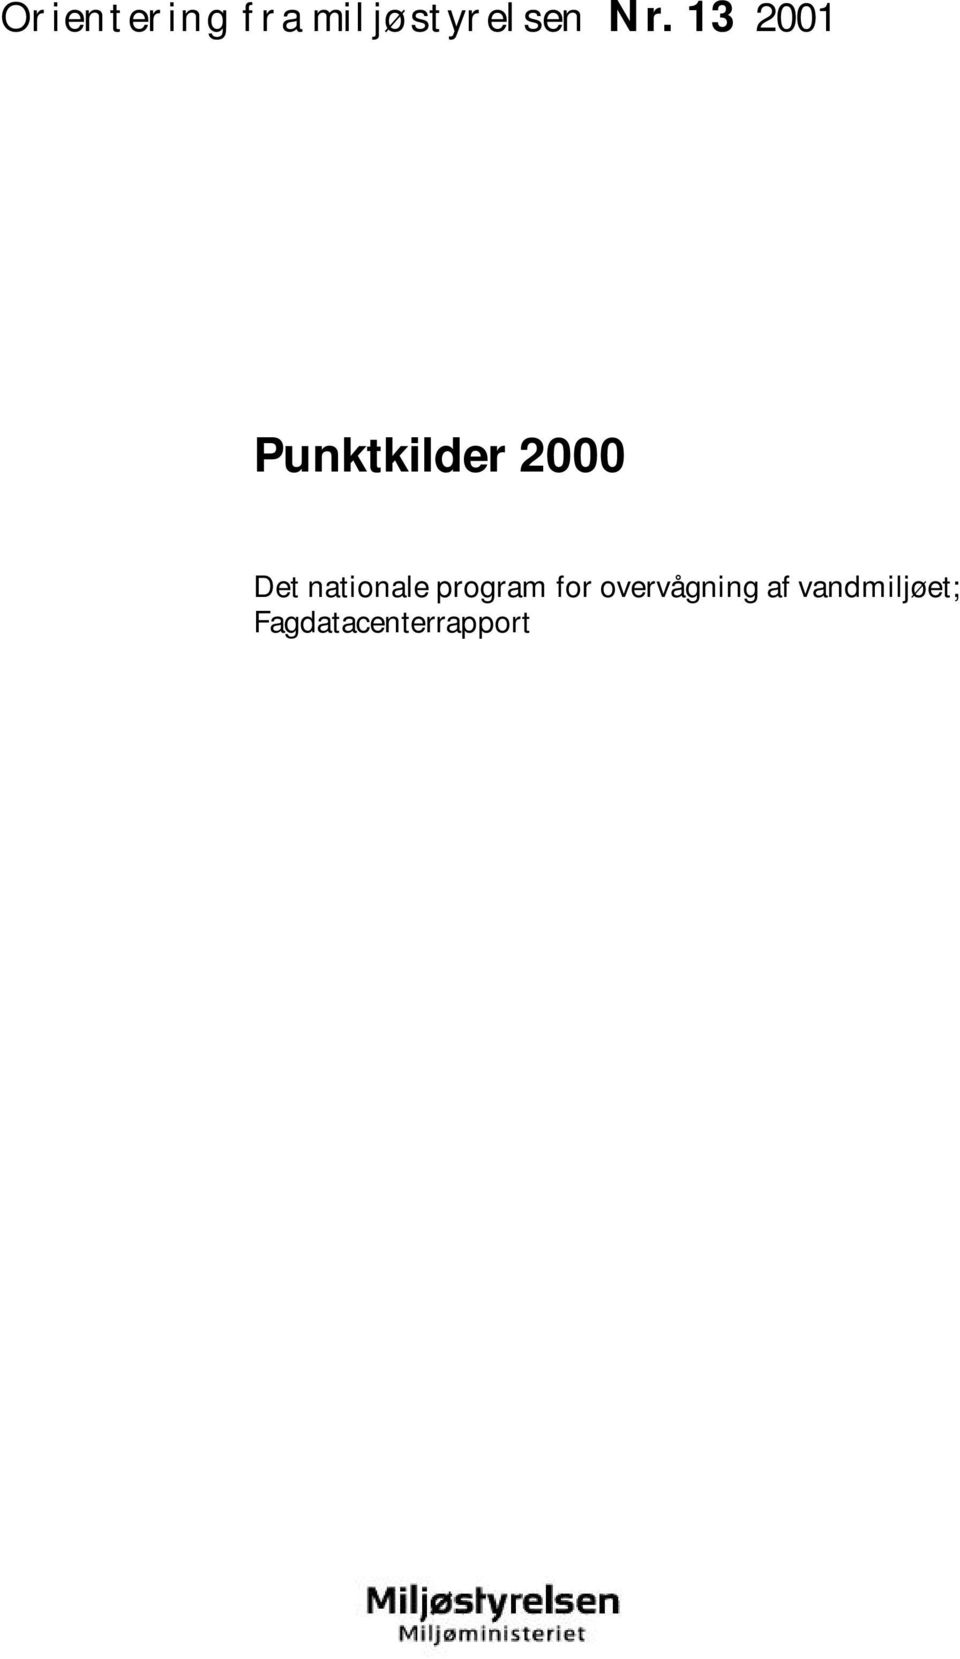 nationale program for overvågning